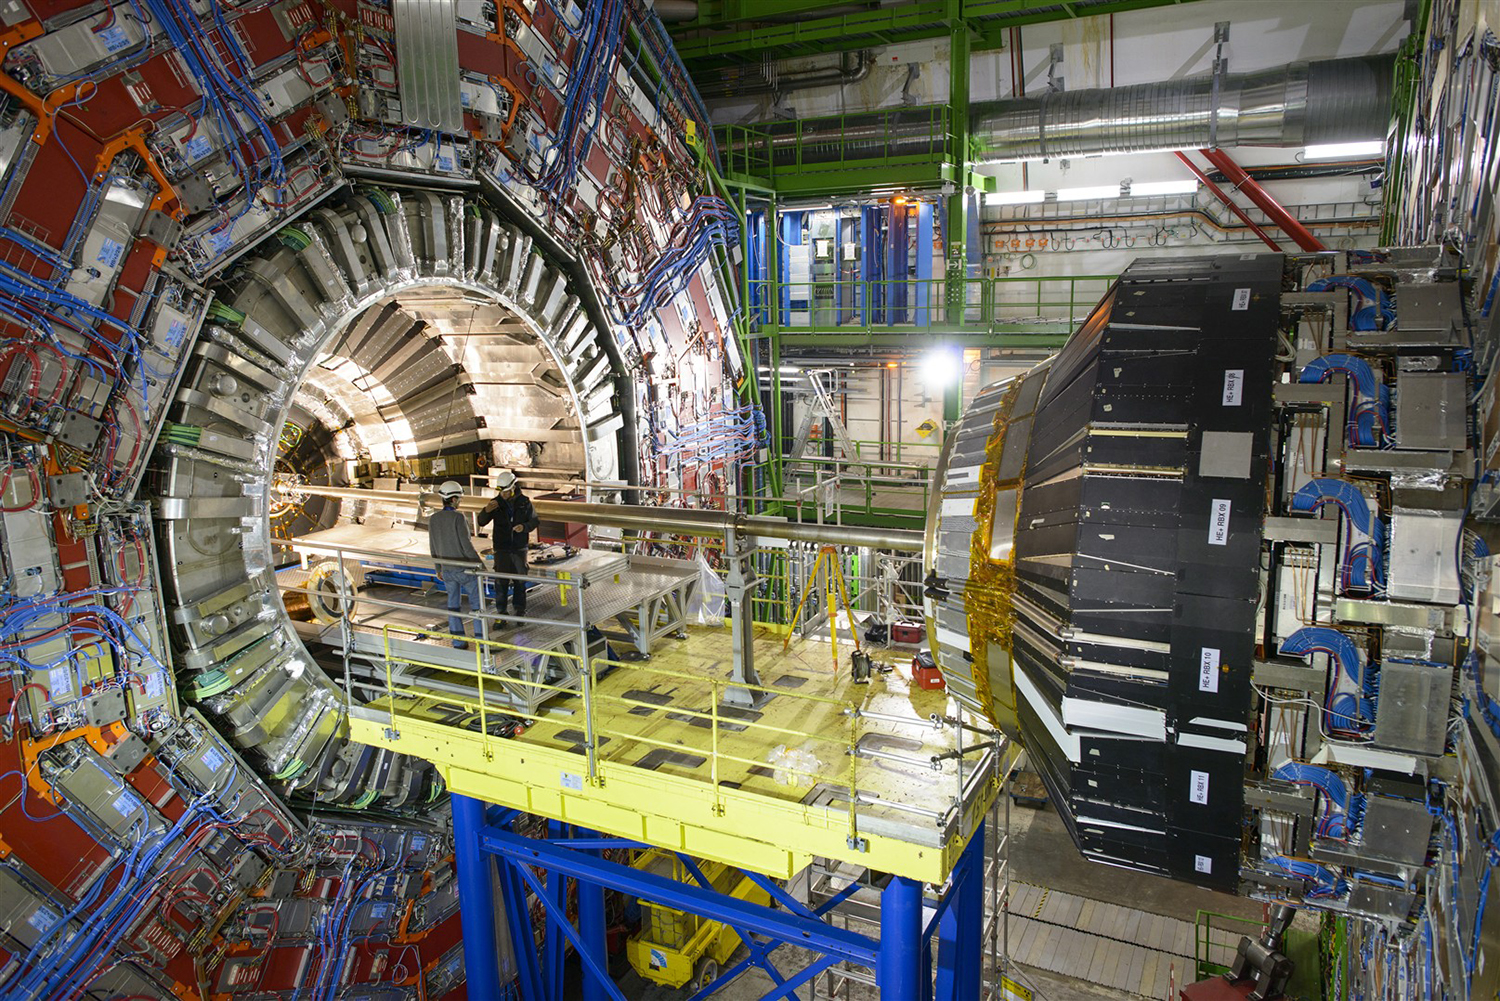 Could UFO sighting be sign Large Hadron Collider has created portal to other dimension?